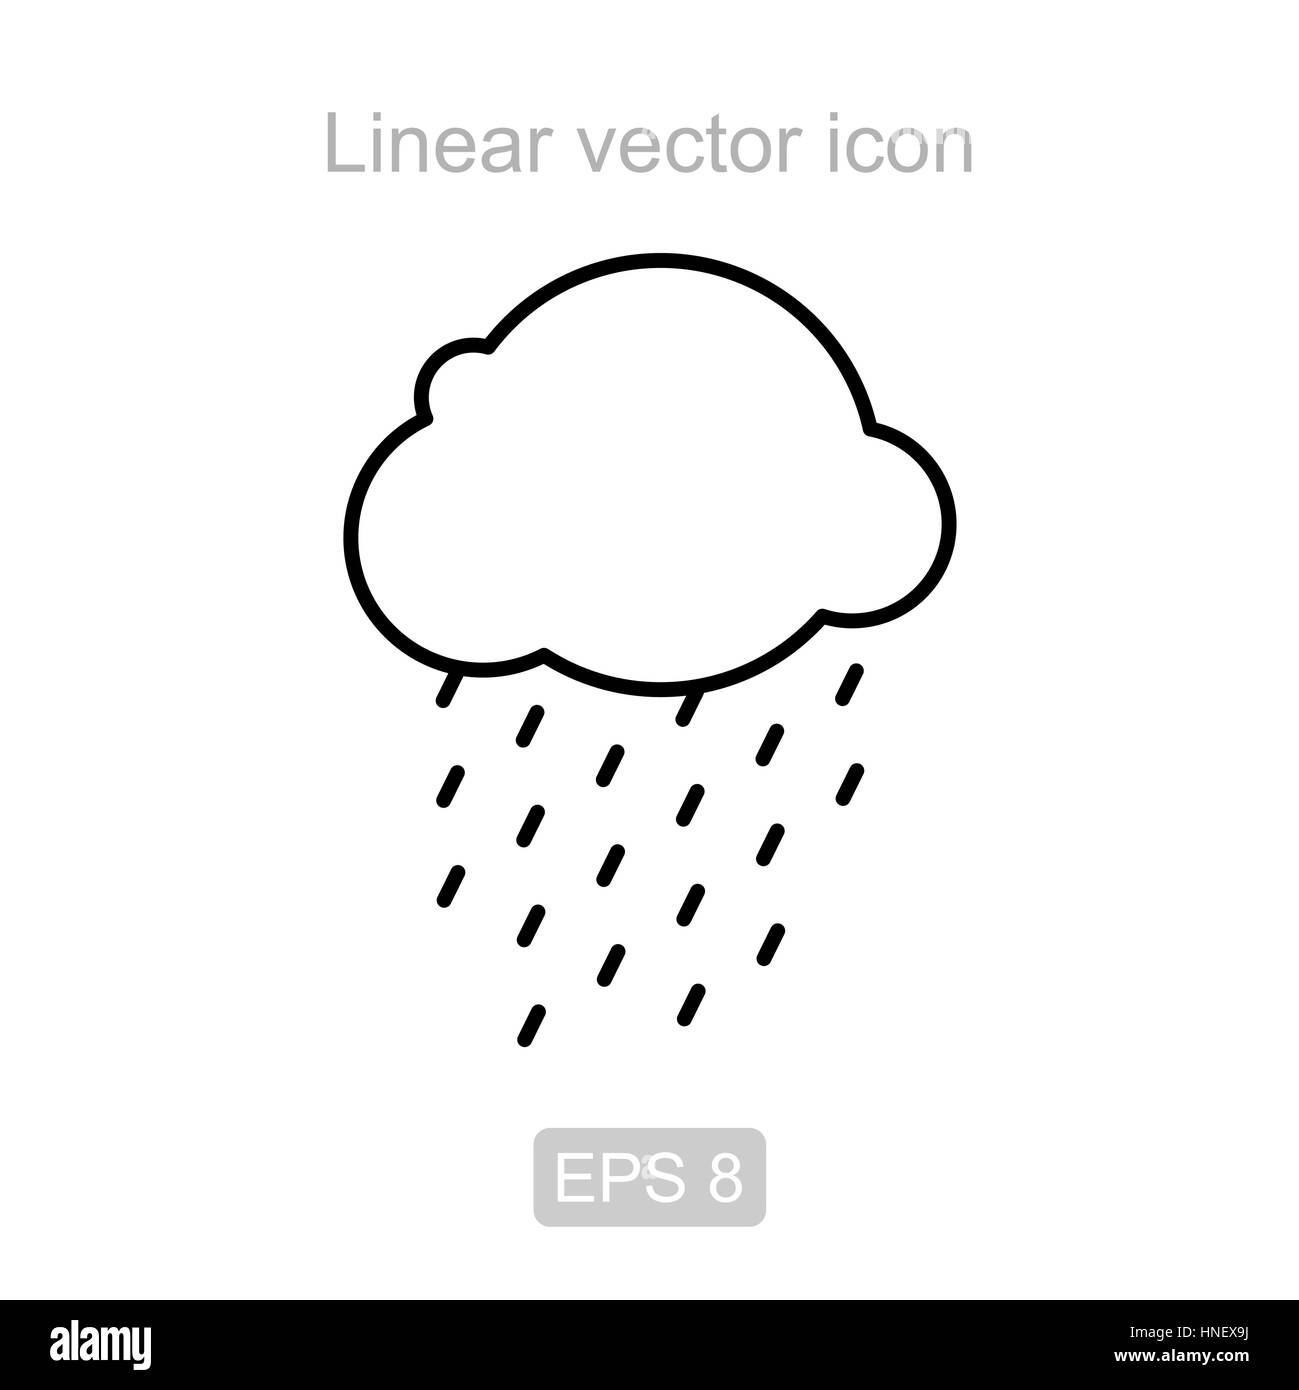 Icon of the rainy cloud in a linear style - Stock Image